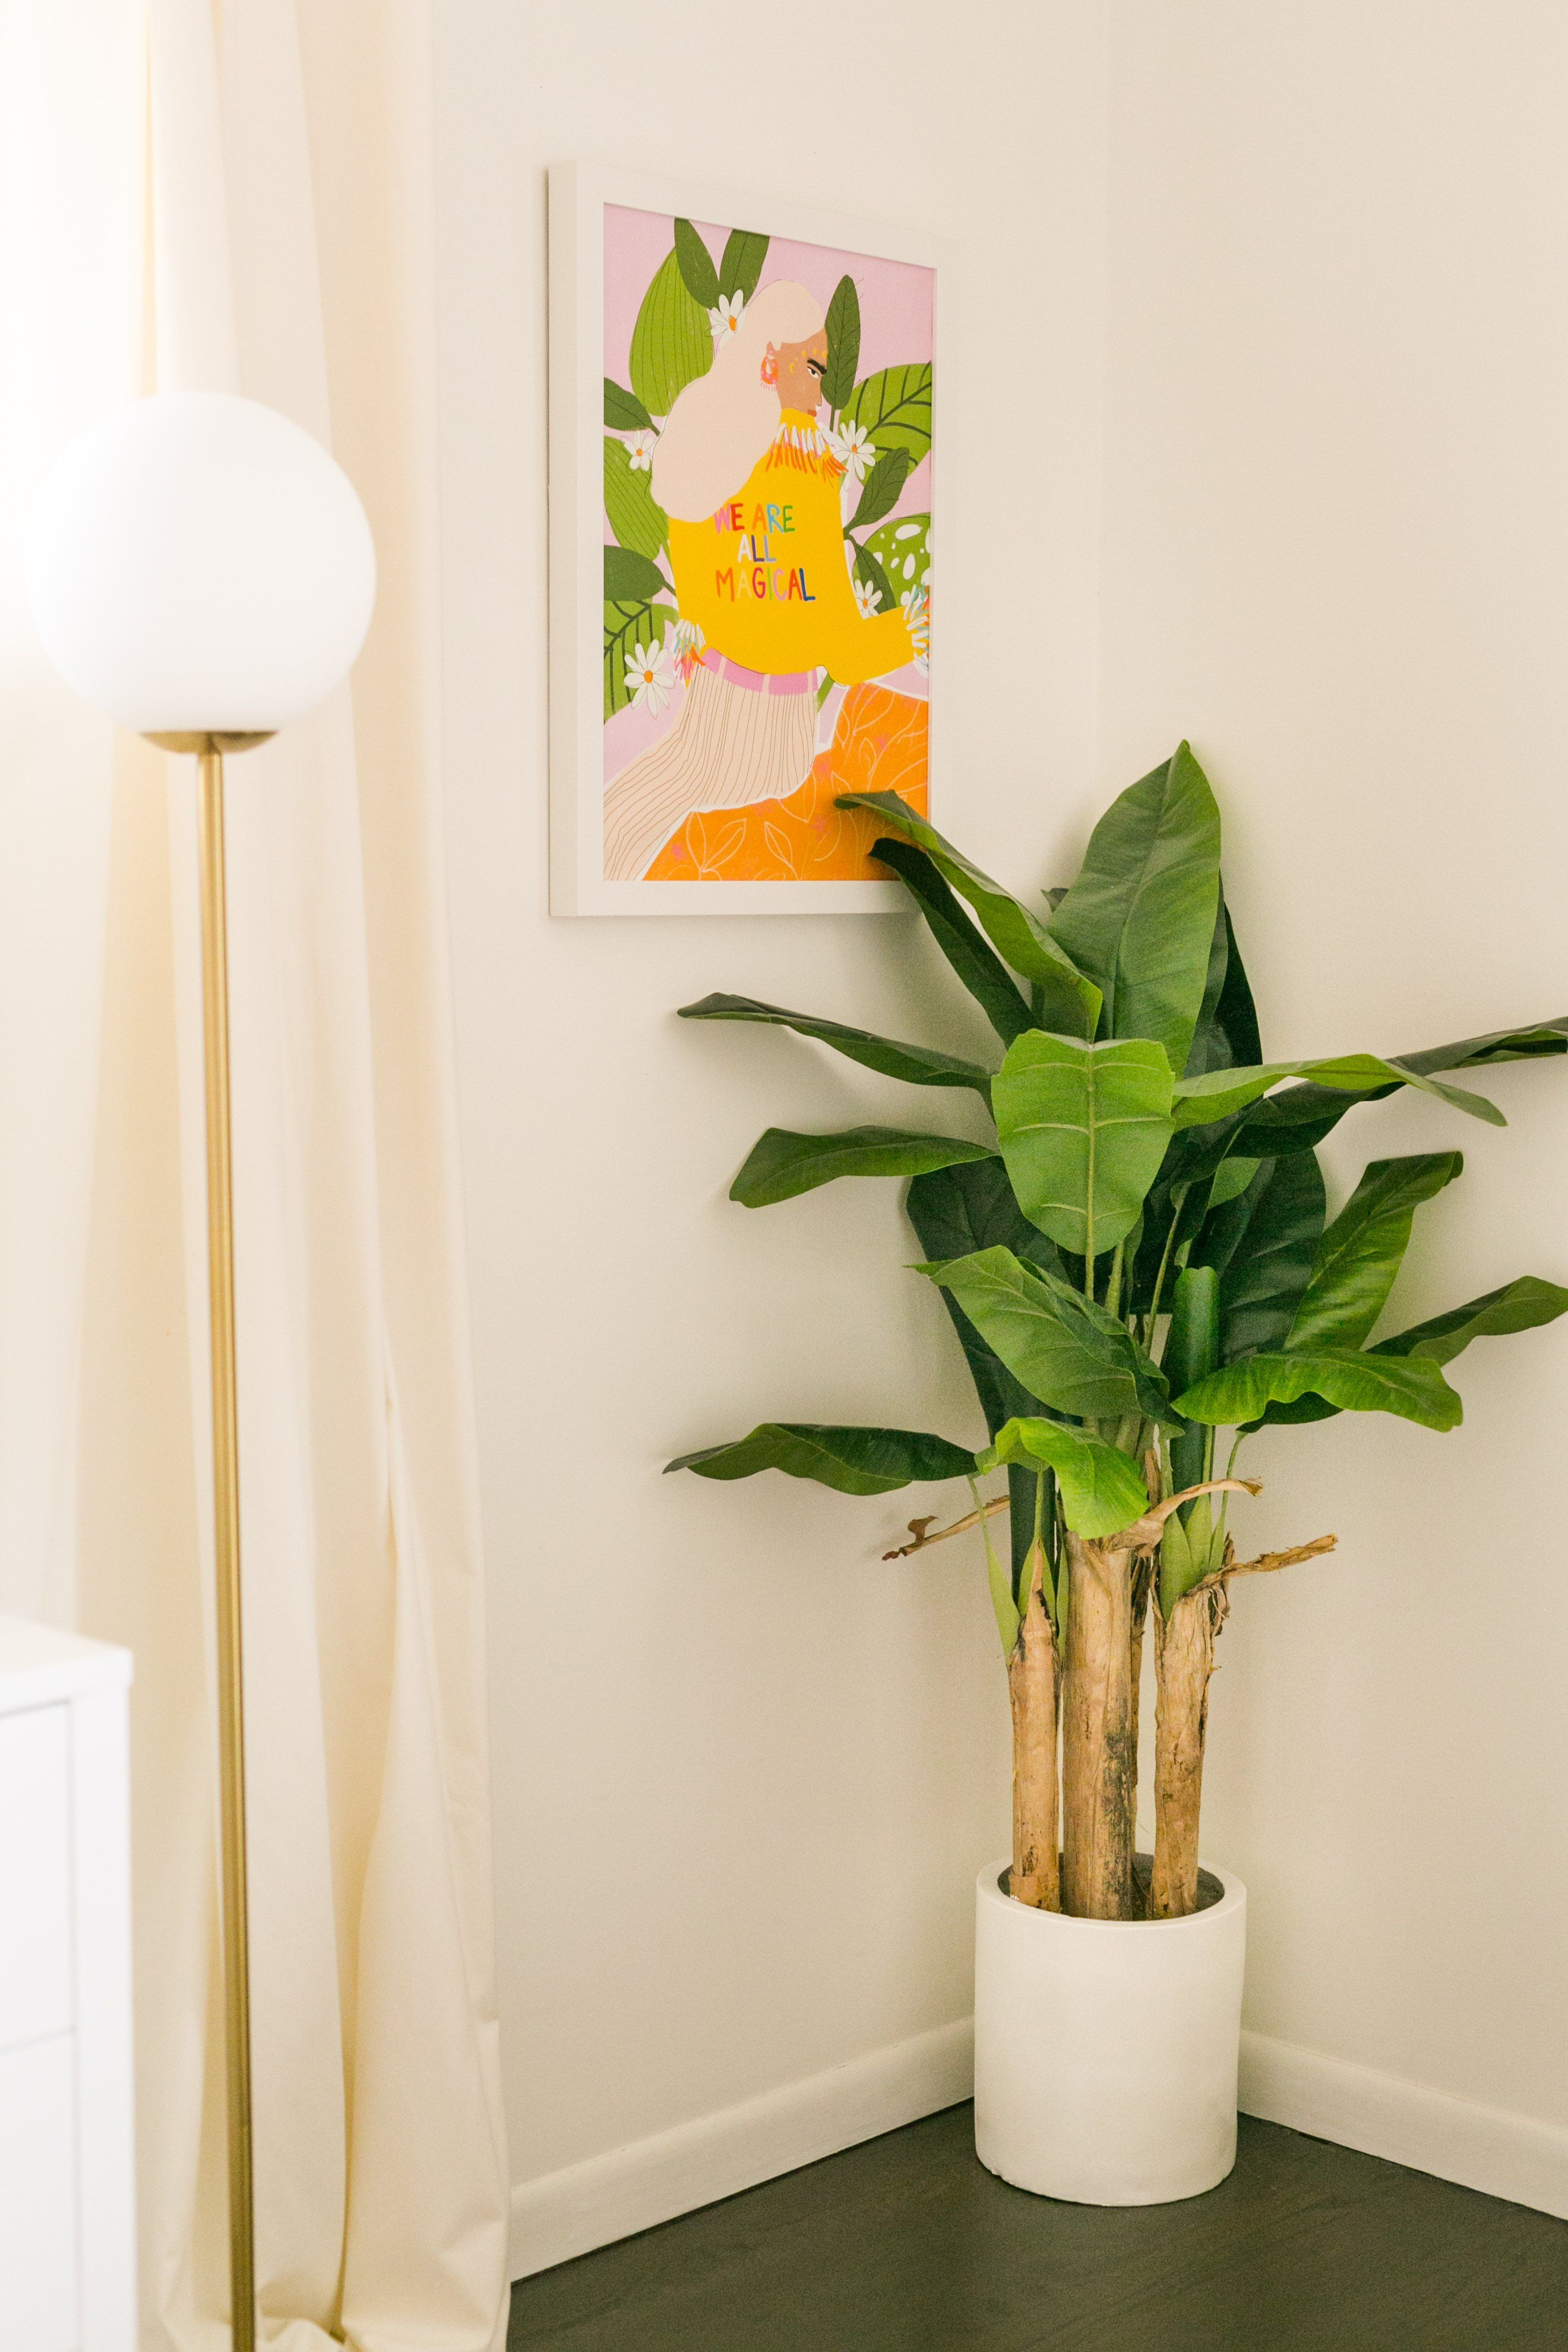 Idee Deco Plante Interieur laura's master bedroom refresh (before + after | idée de